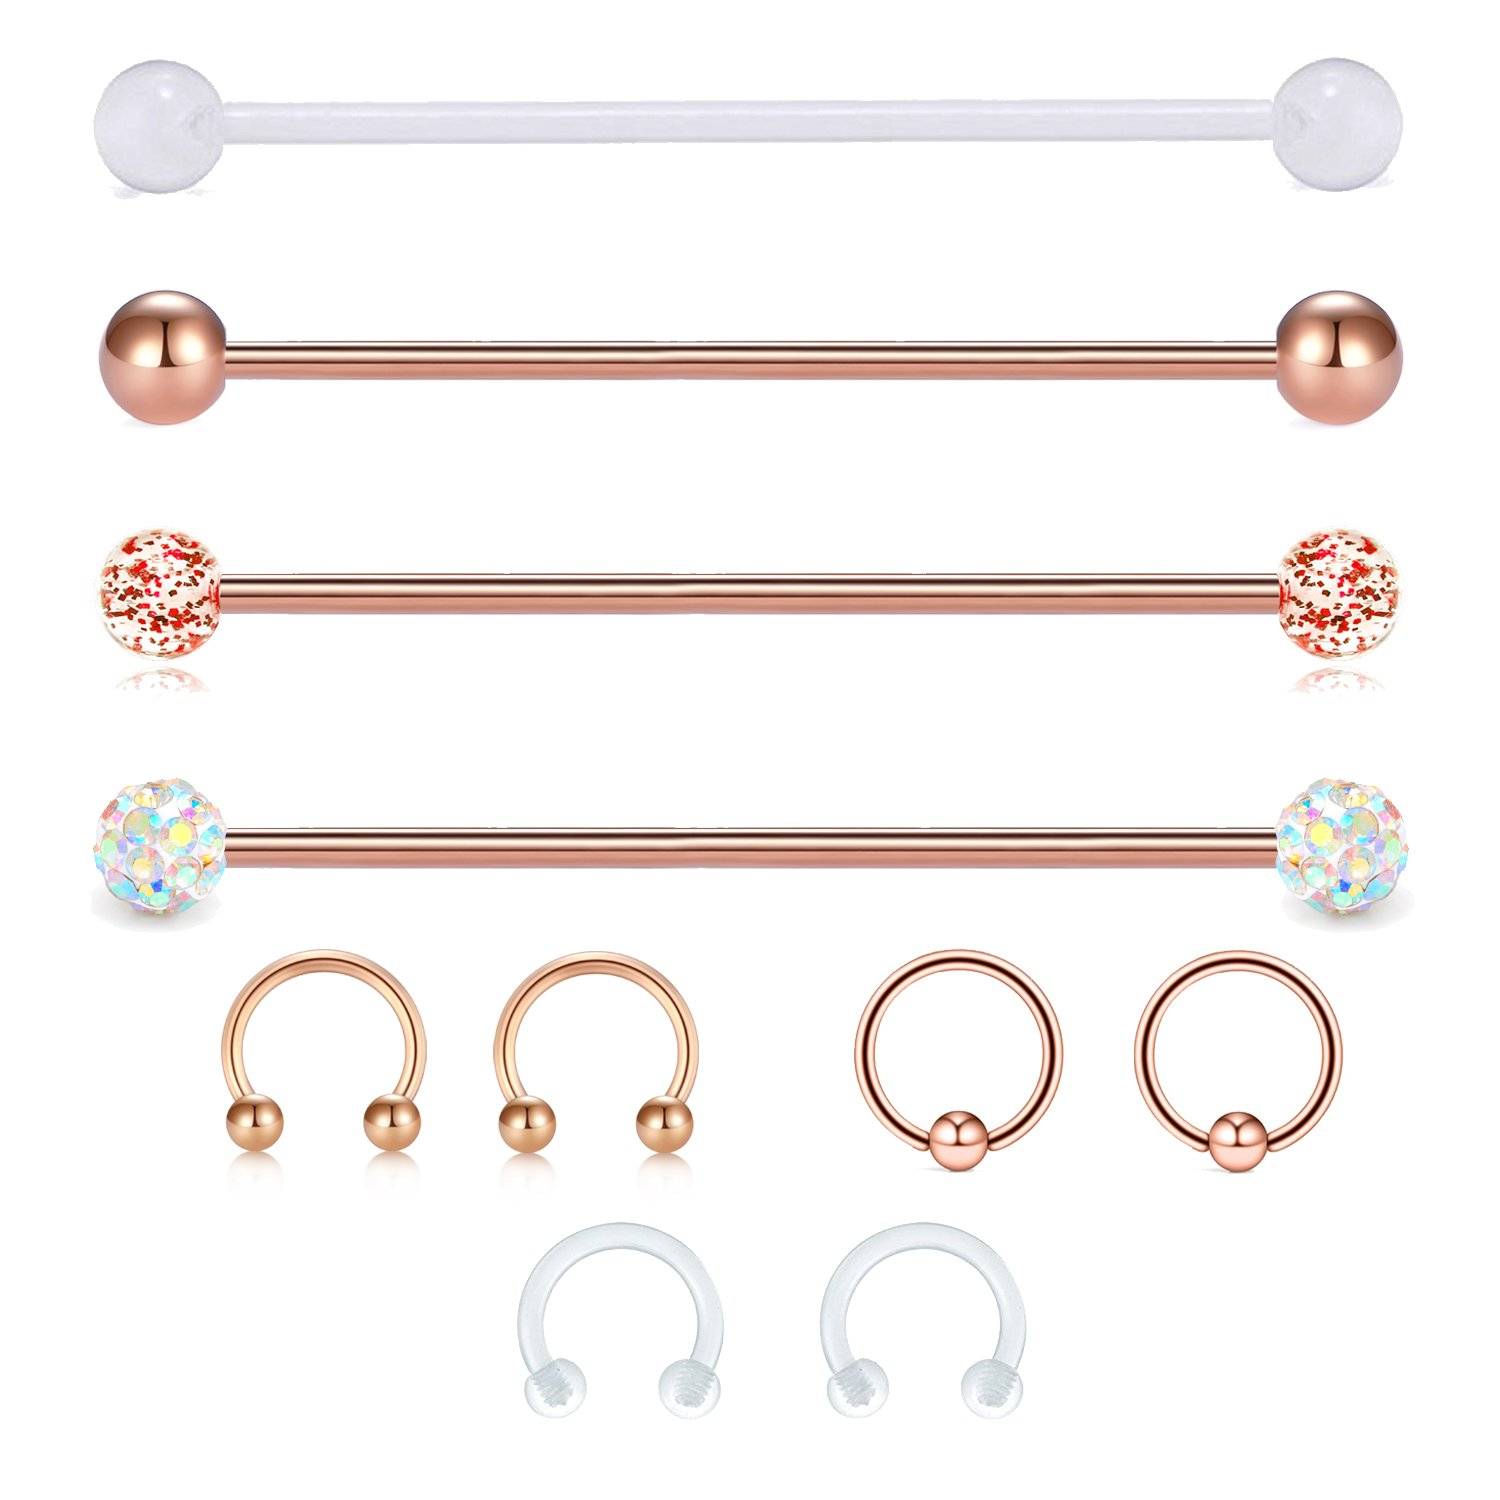 "JFORYOU 14G Cartilage Earring Industrial Barbells Surgical Steel Cartilage Tragus Helix Earring Flexible Bioplast Retainer, 1 1/2""(38mm),Rose Gold"